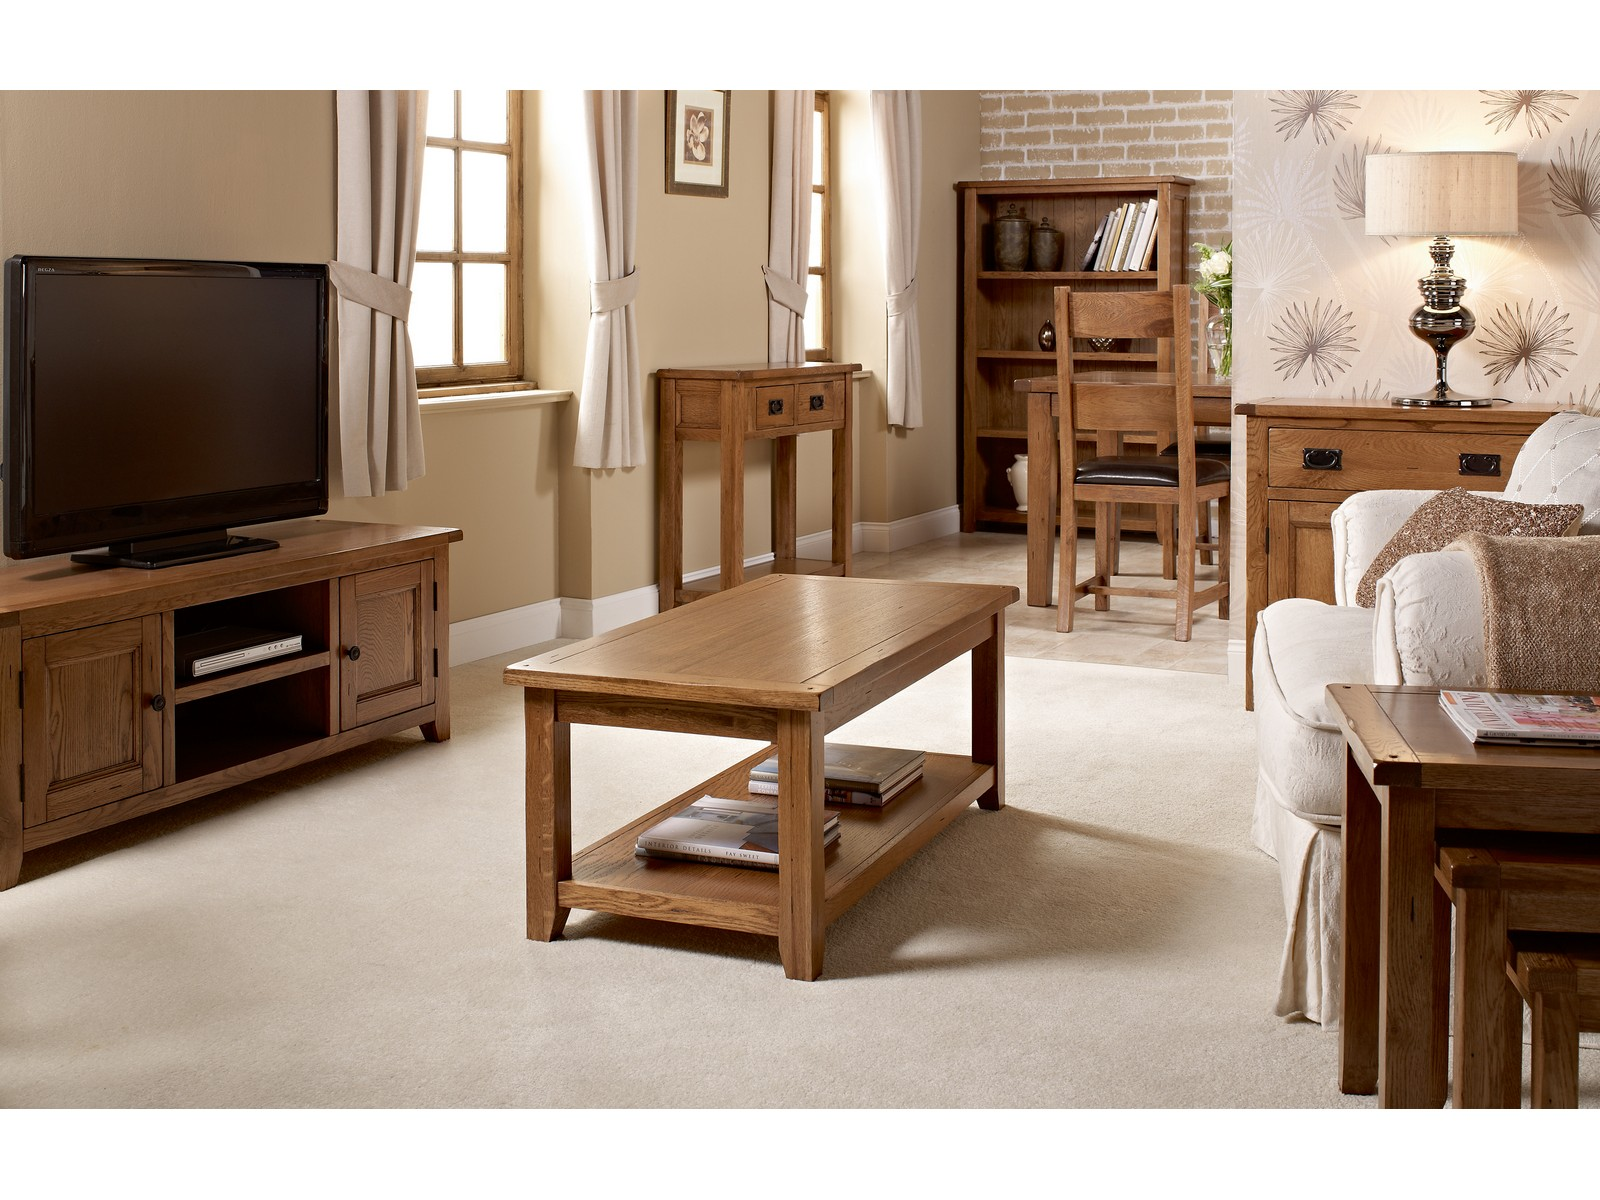 Dorset White Oak Living Room Furniture Tv Stand Table Chairs